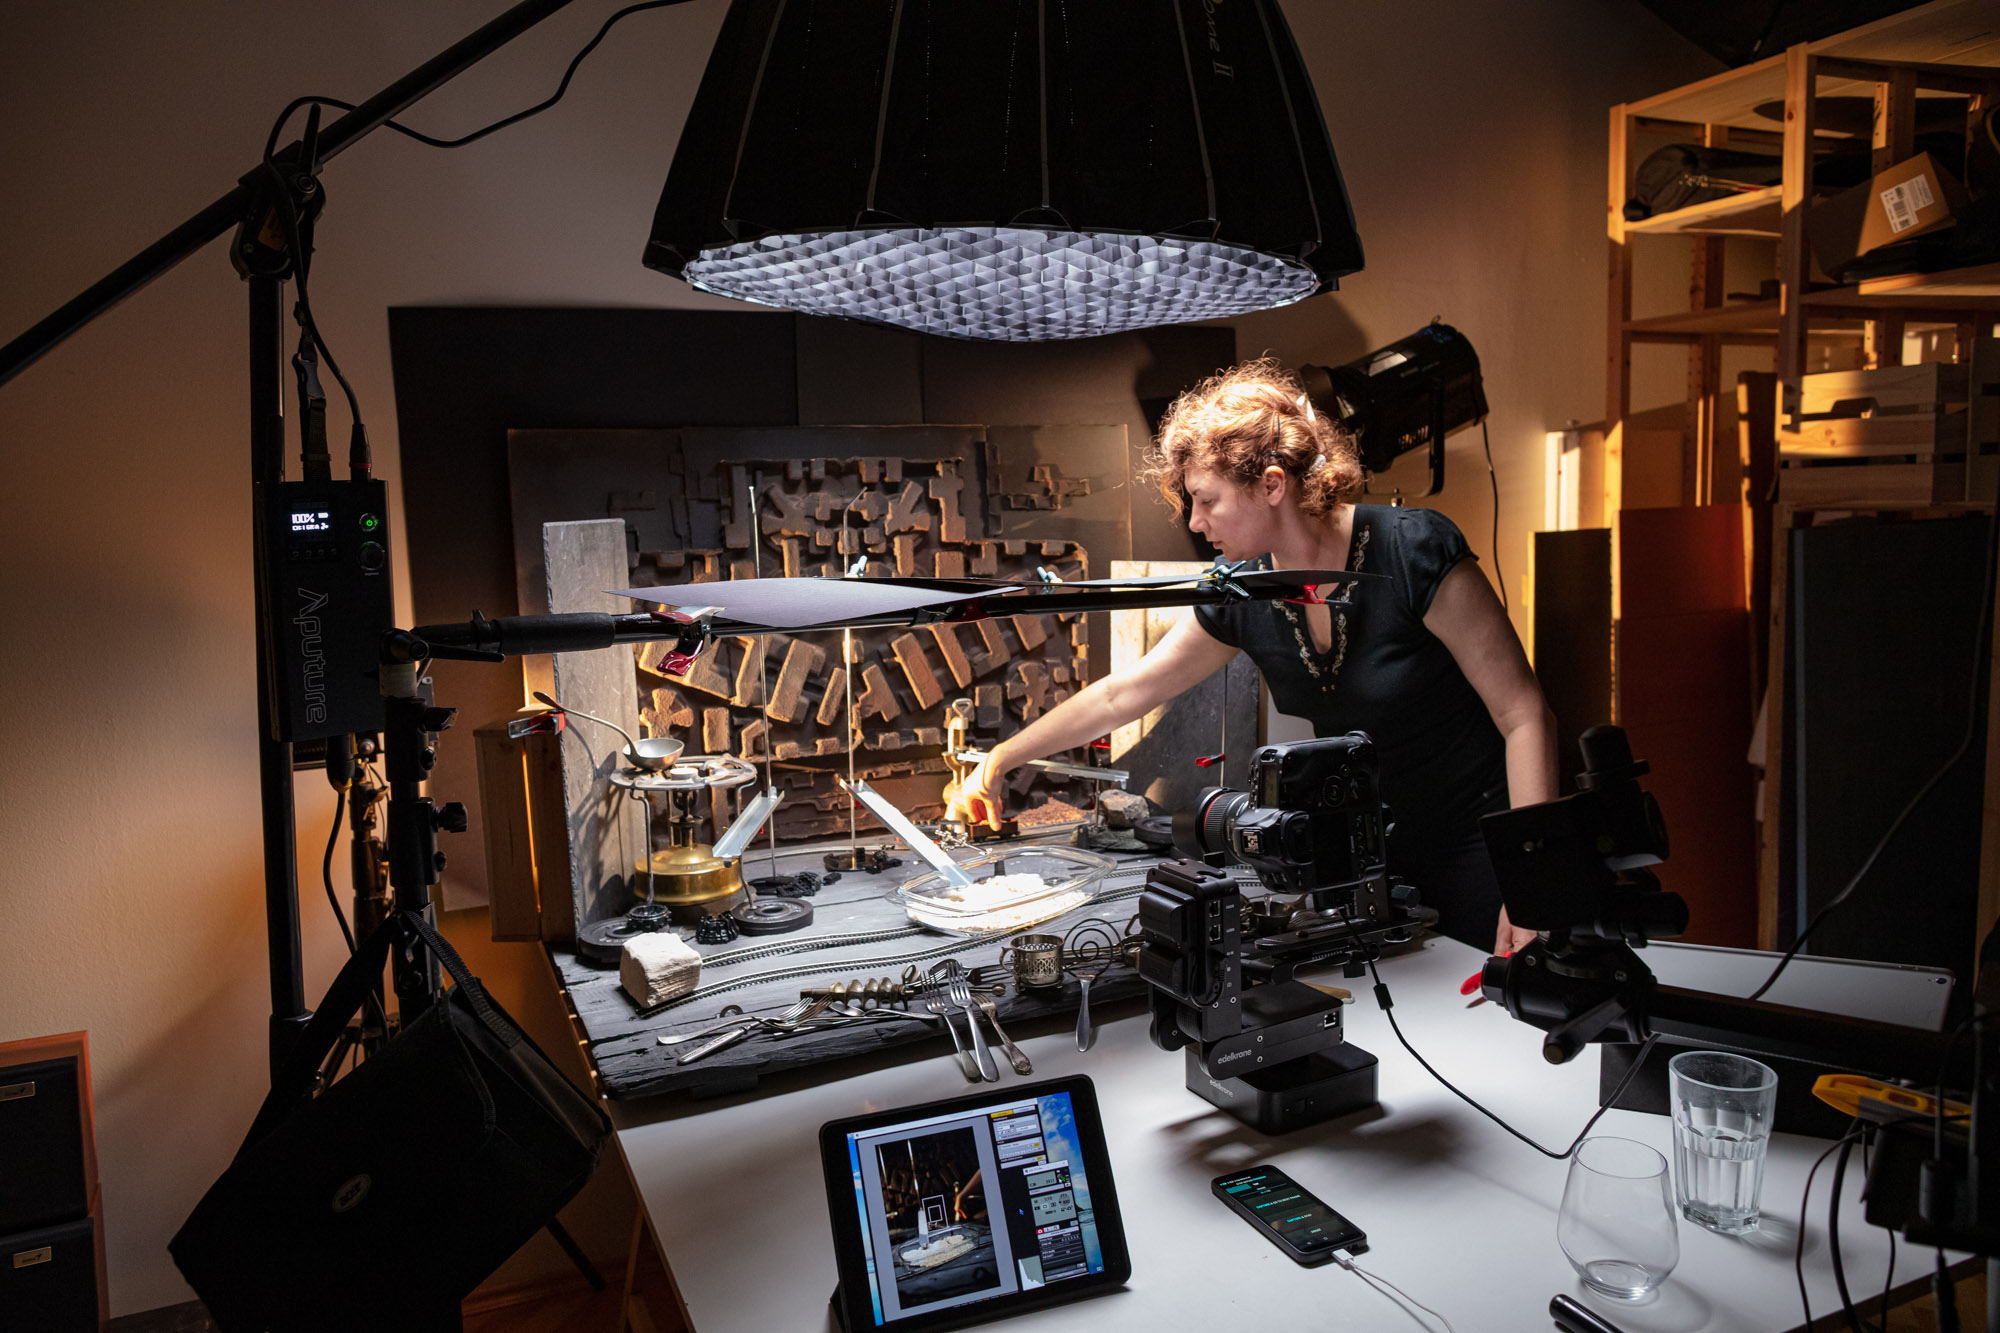 """Behind the scenes at the video production of """"Vegan Cherry Crumble Pie Recipe"""". A big table set up resembling a """"pie factory"""". In a studio with various lamps and cameras. The stylist/art director is preparing the scene."""